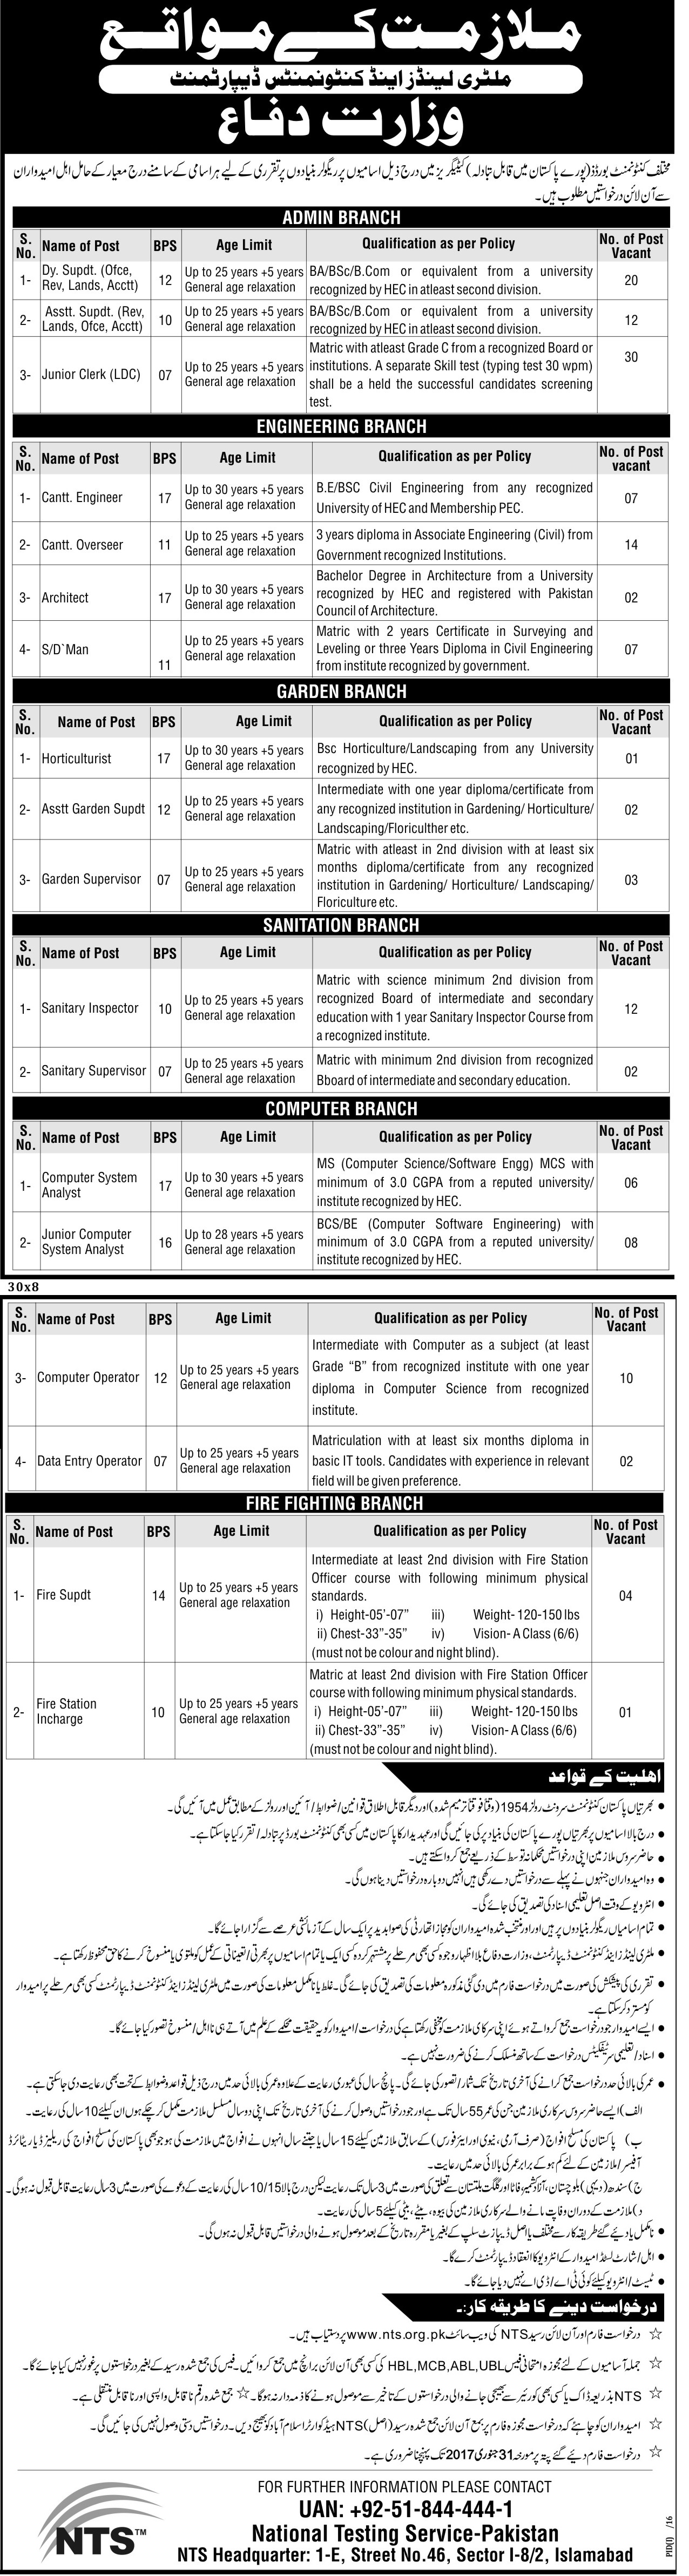 Military Lands & Cantonment Board Department Test 2017 for Various Jobs Posts